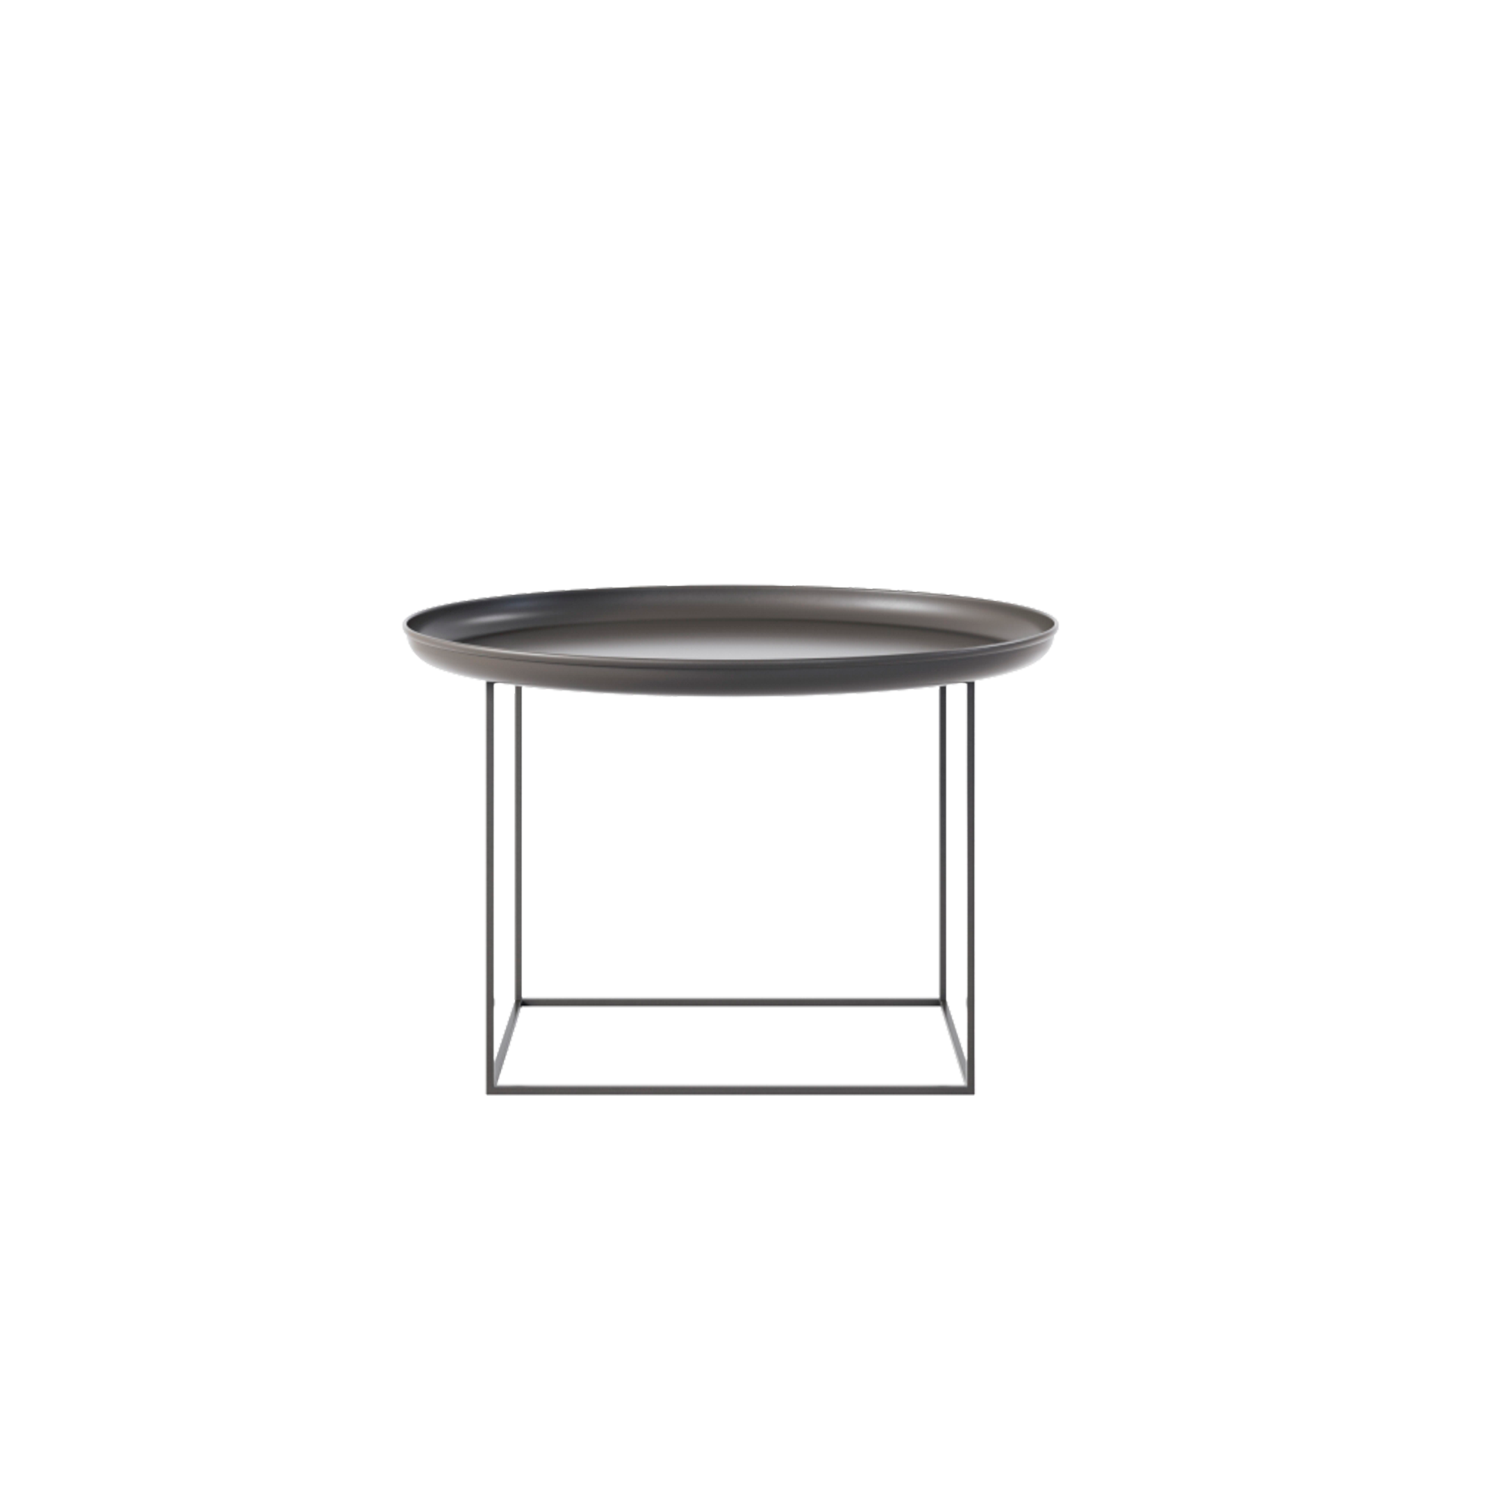 Duke Coffee Table Medium - The Duke tables are a series of multi-functional side and coffee tables with a spun metal tray loosely placed on top of a metal frame. The tables come in small, medium and large and can easily be adapted to fit your needs, with the medium size particularly functional. The base can be rotated onto its different faces to create three different table heights, making them suitable to fit any height of sofa or to be used as a bedside table. When all three sizes are placed together they create a nice landscape that compliments any sofa.  | Matter of Stuff